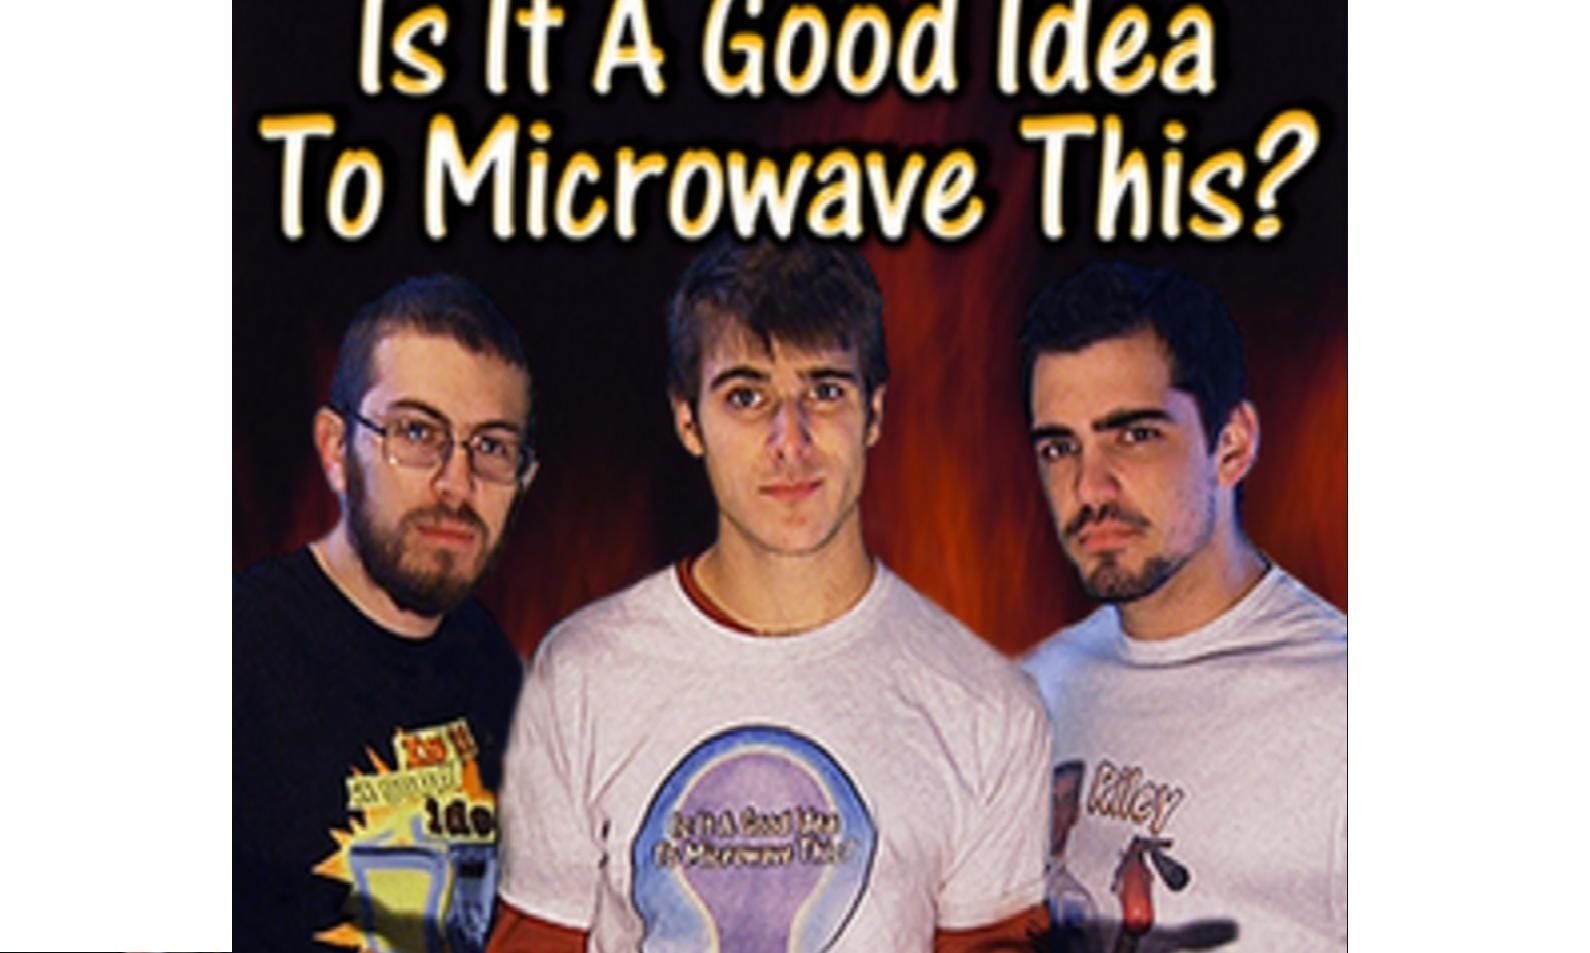 is it a good idea to microwave this? (2007-2011)